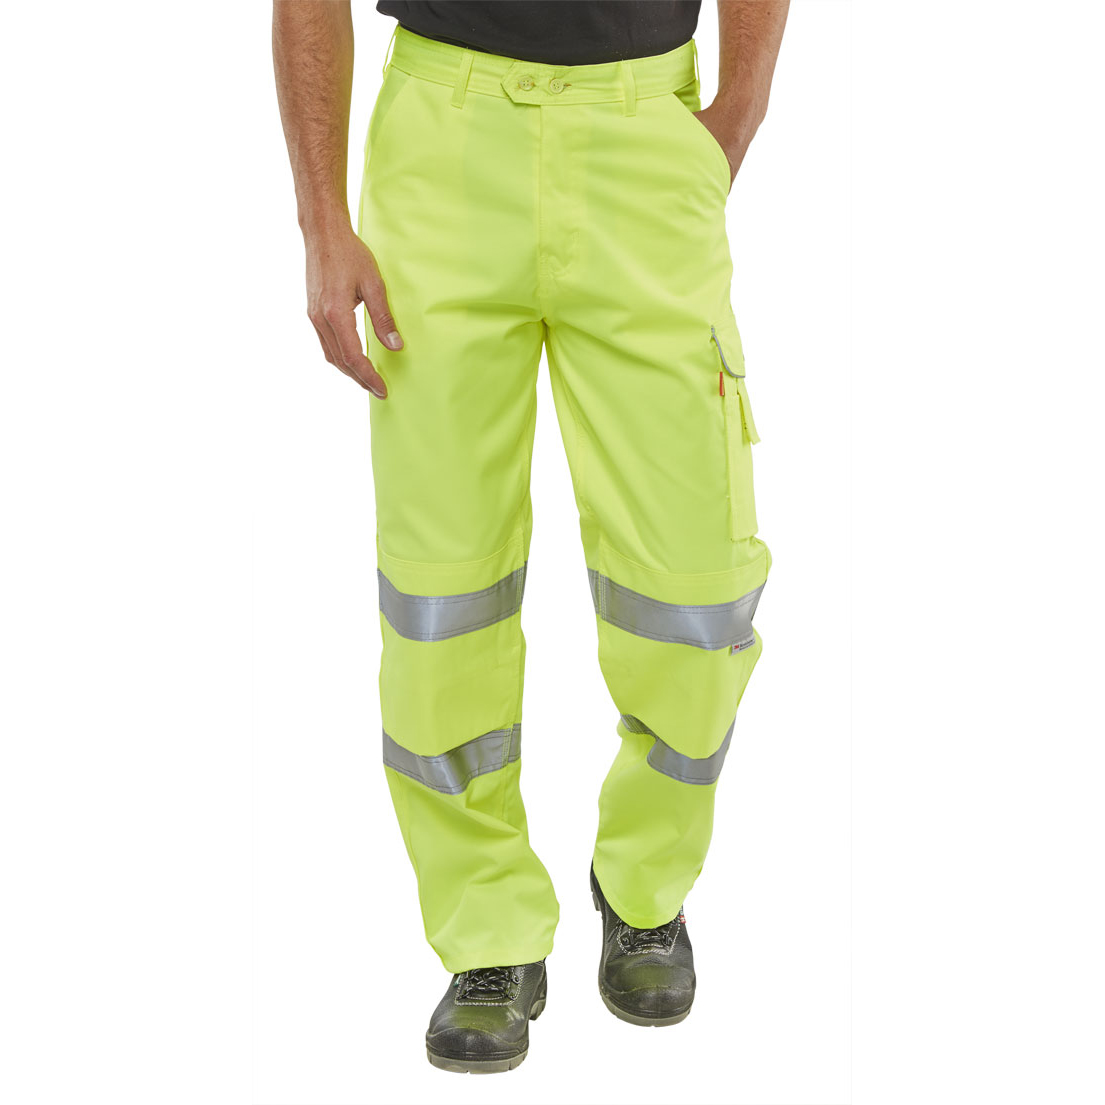 BSeen Trousers Polycotton Hi-Vis EN471 Saturn Yellow 38 Long Ref PCTENSY38T Up to 3 Day Leadtime